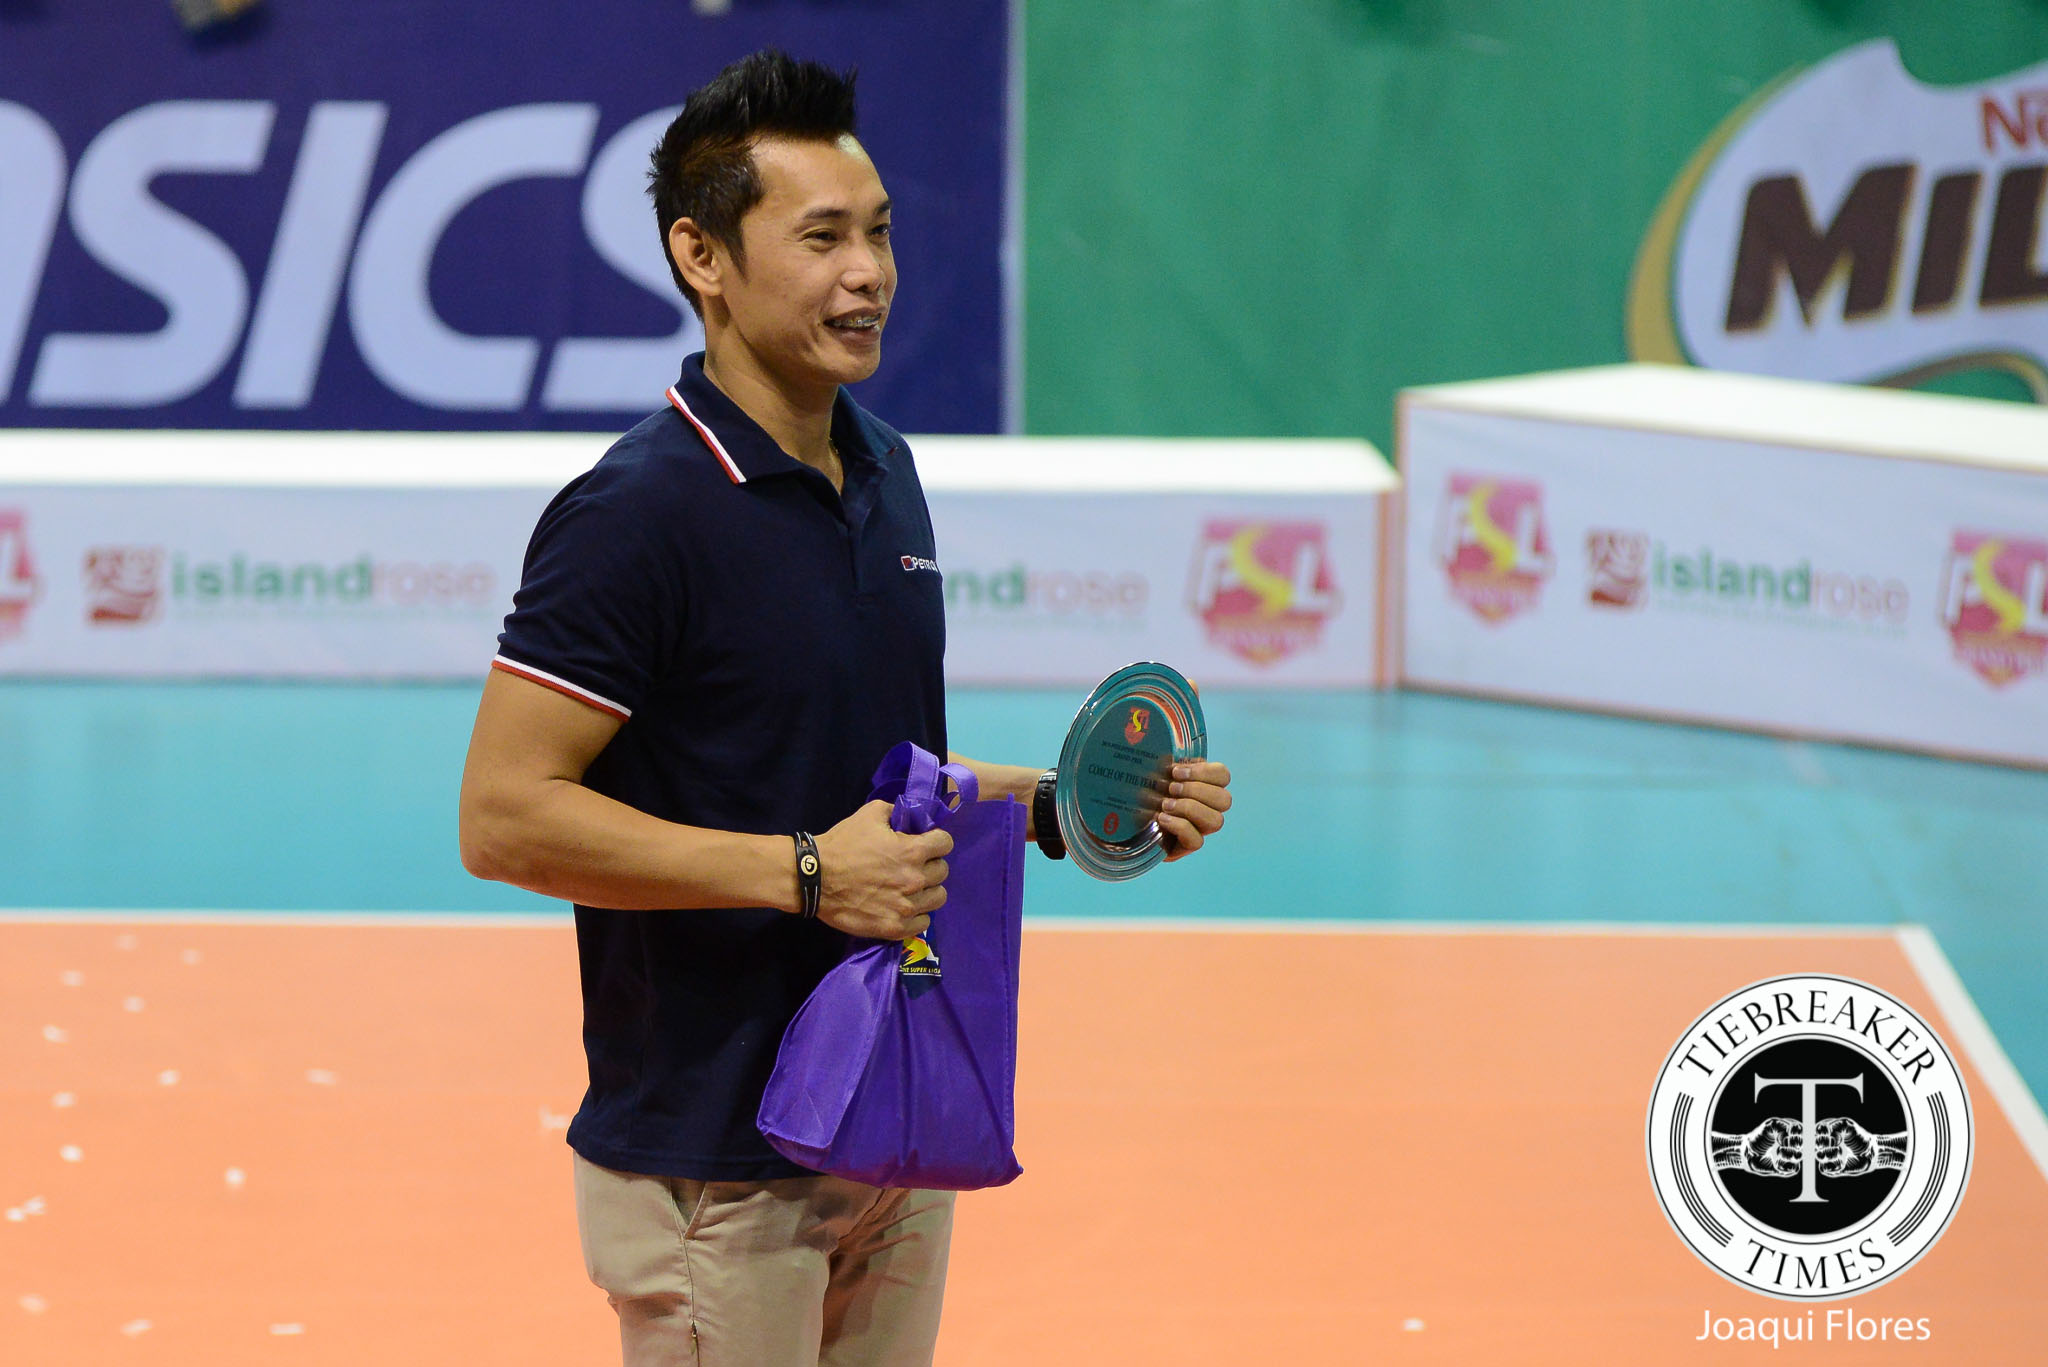 Tiebreaker Times Pascua expects PSL All-Stars to go all out in Thai-Denmark Super League News PSL Volleyball  Stephanie Mercado Rhea Dimaculangan Rachel Anne Daquis Petron-PSL All Stars Mina Aganon Michelle Gumabao Michael Carino Melissa Gohing Maika Ortiz Jen Reyes Jeanette Panaga Idea Khonkaen George Pascua Cha Cruz Ces Molina Bangkok Glass April Ross Hingpit Aiza Maizo-Pontillas Aby Marano 3BB Nakhonnont 2016 Thai-Denmark Super League 2016 PSL Season